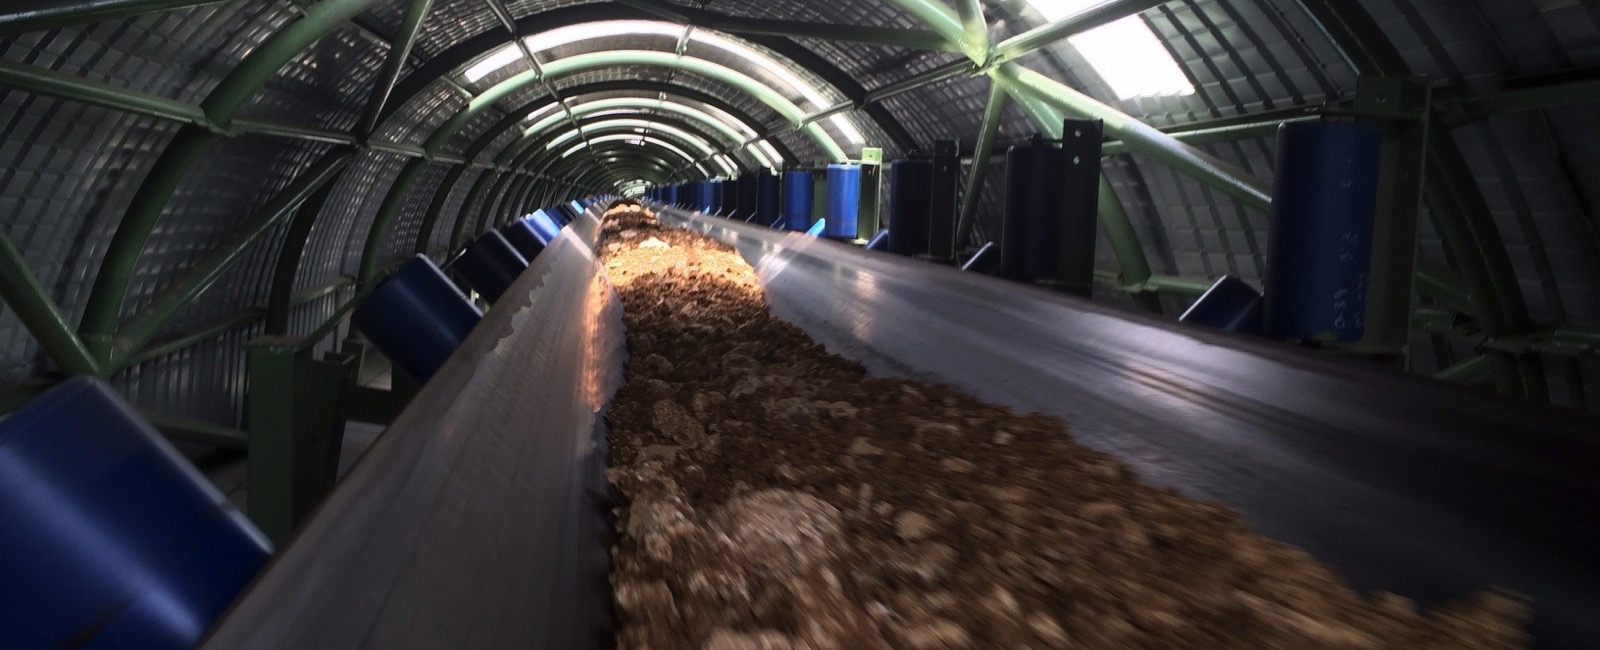 BEUMER Group: 26 km long Overland Conveyor at Yadong Cement in China